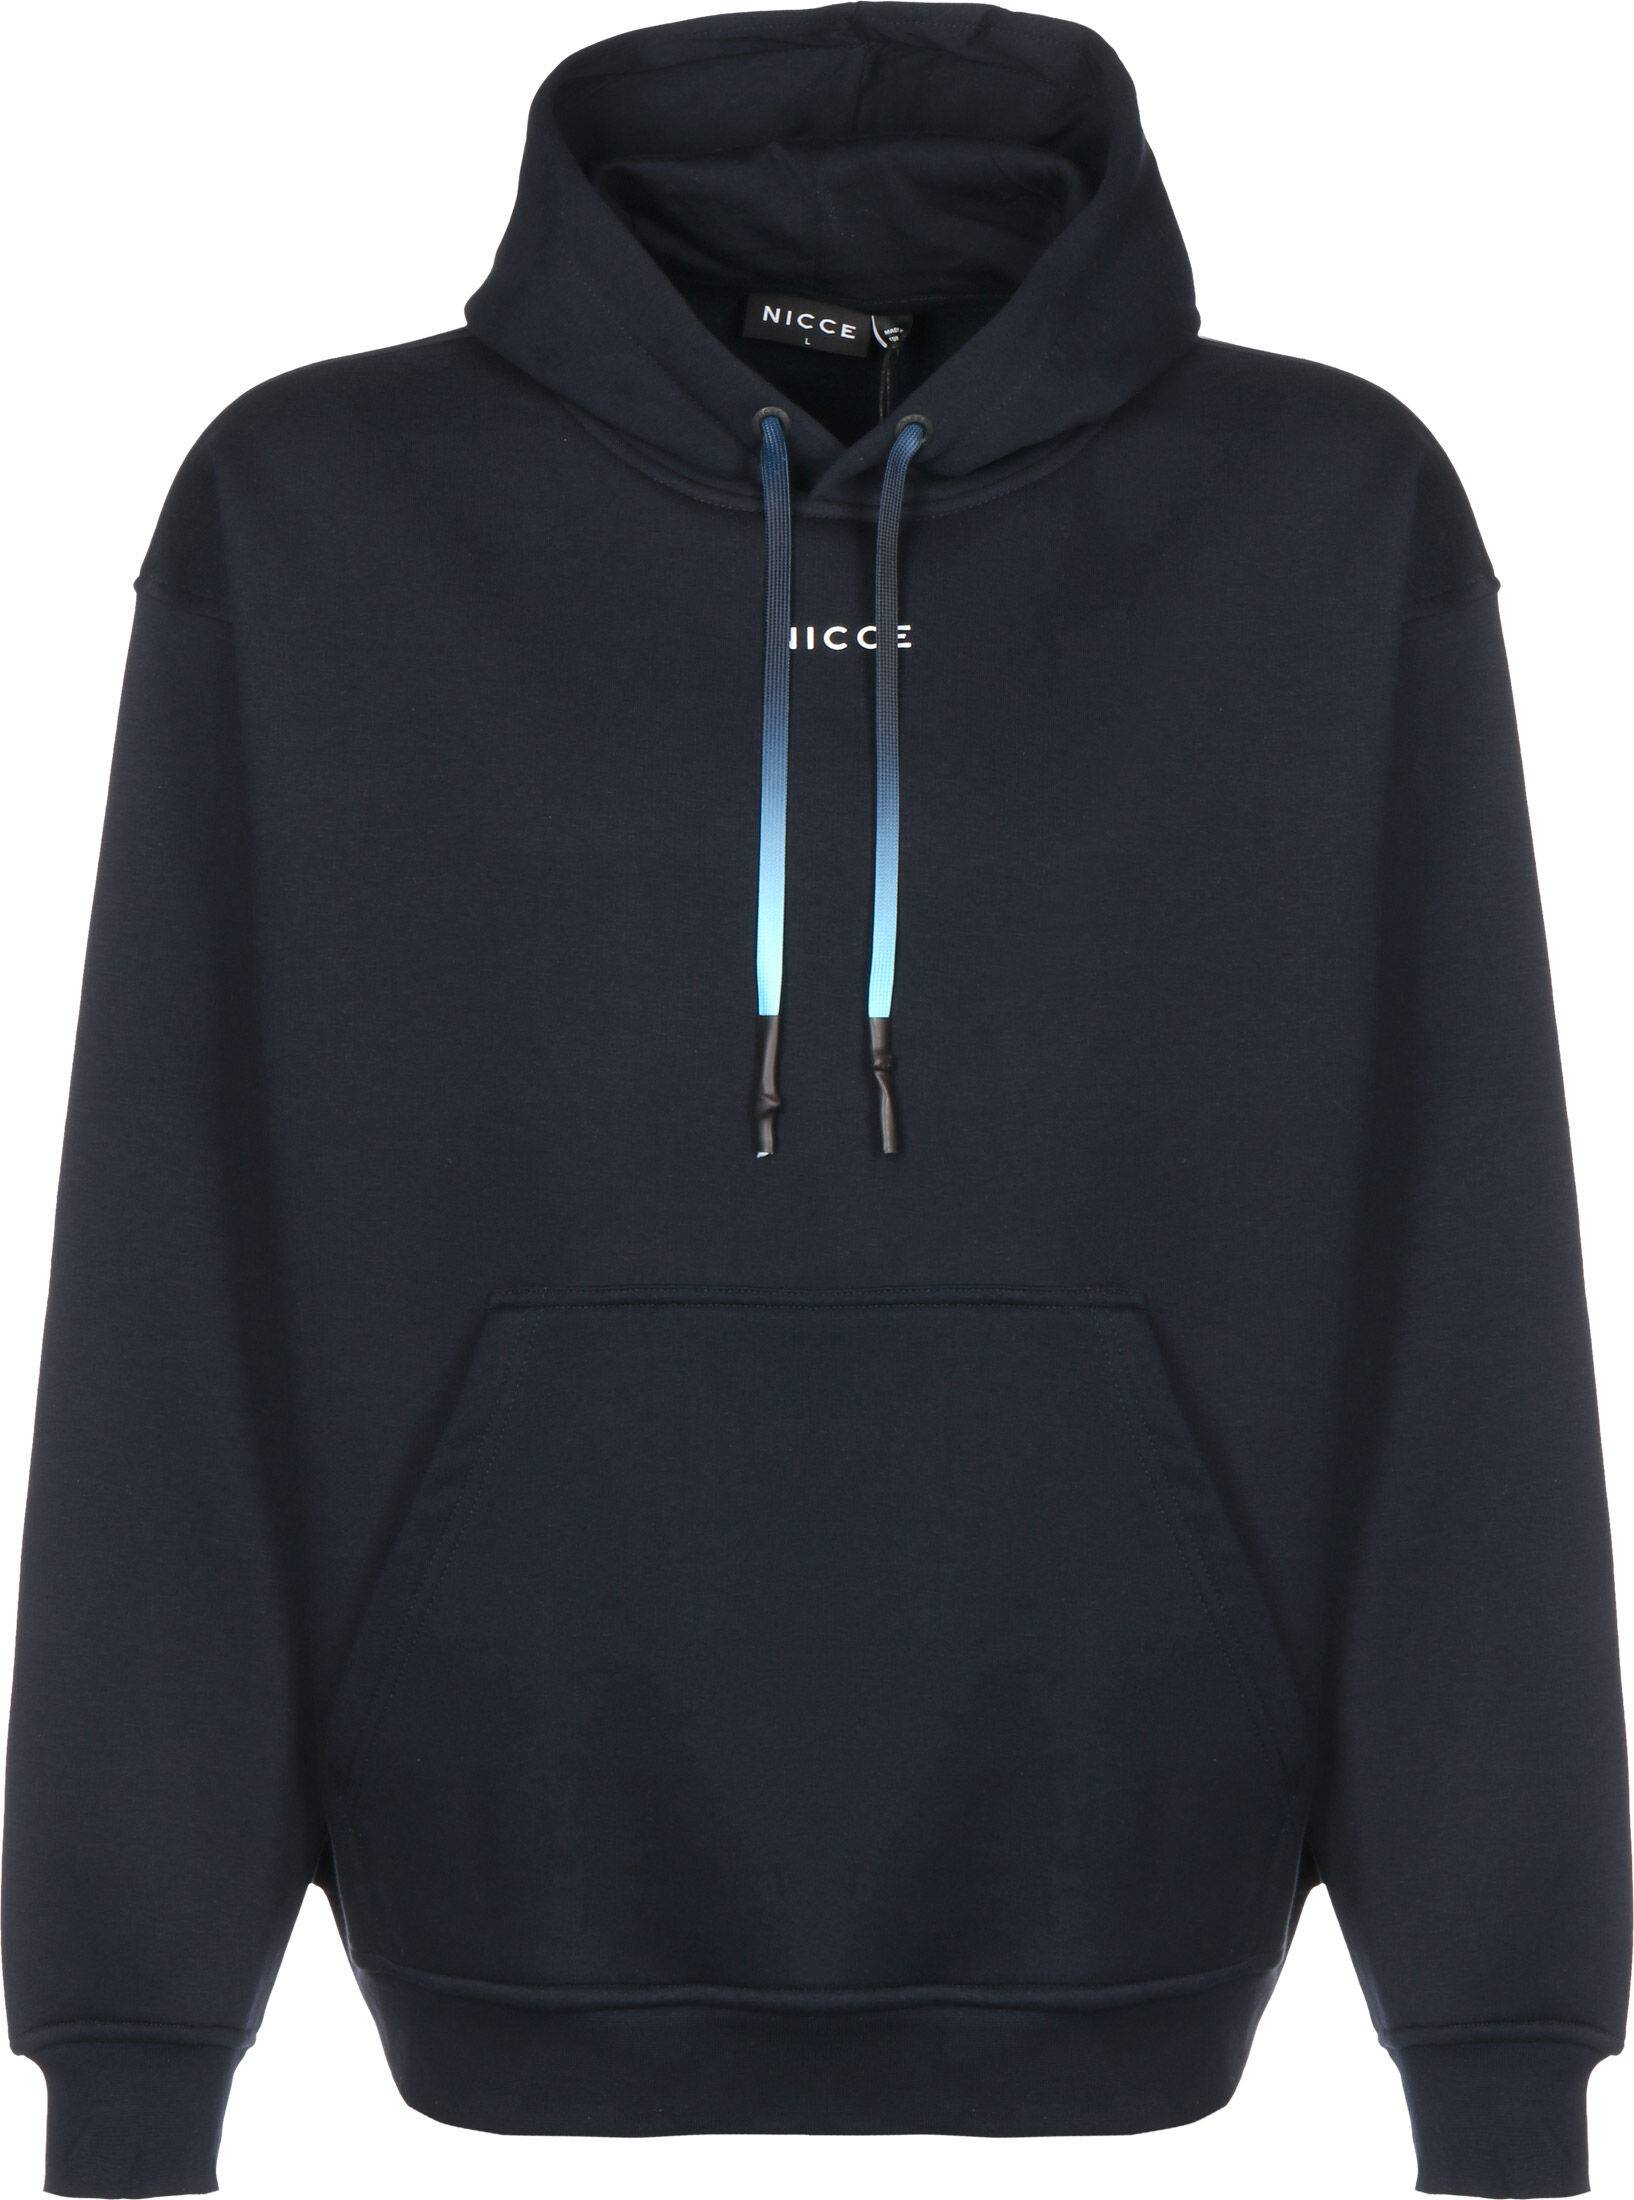 Nicce Zone, taille L, homme, bleu